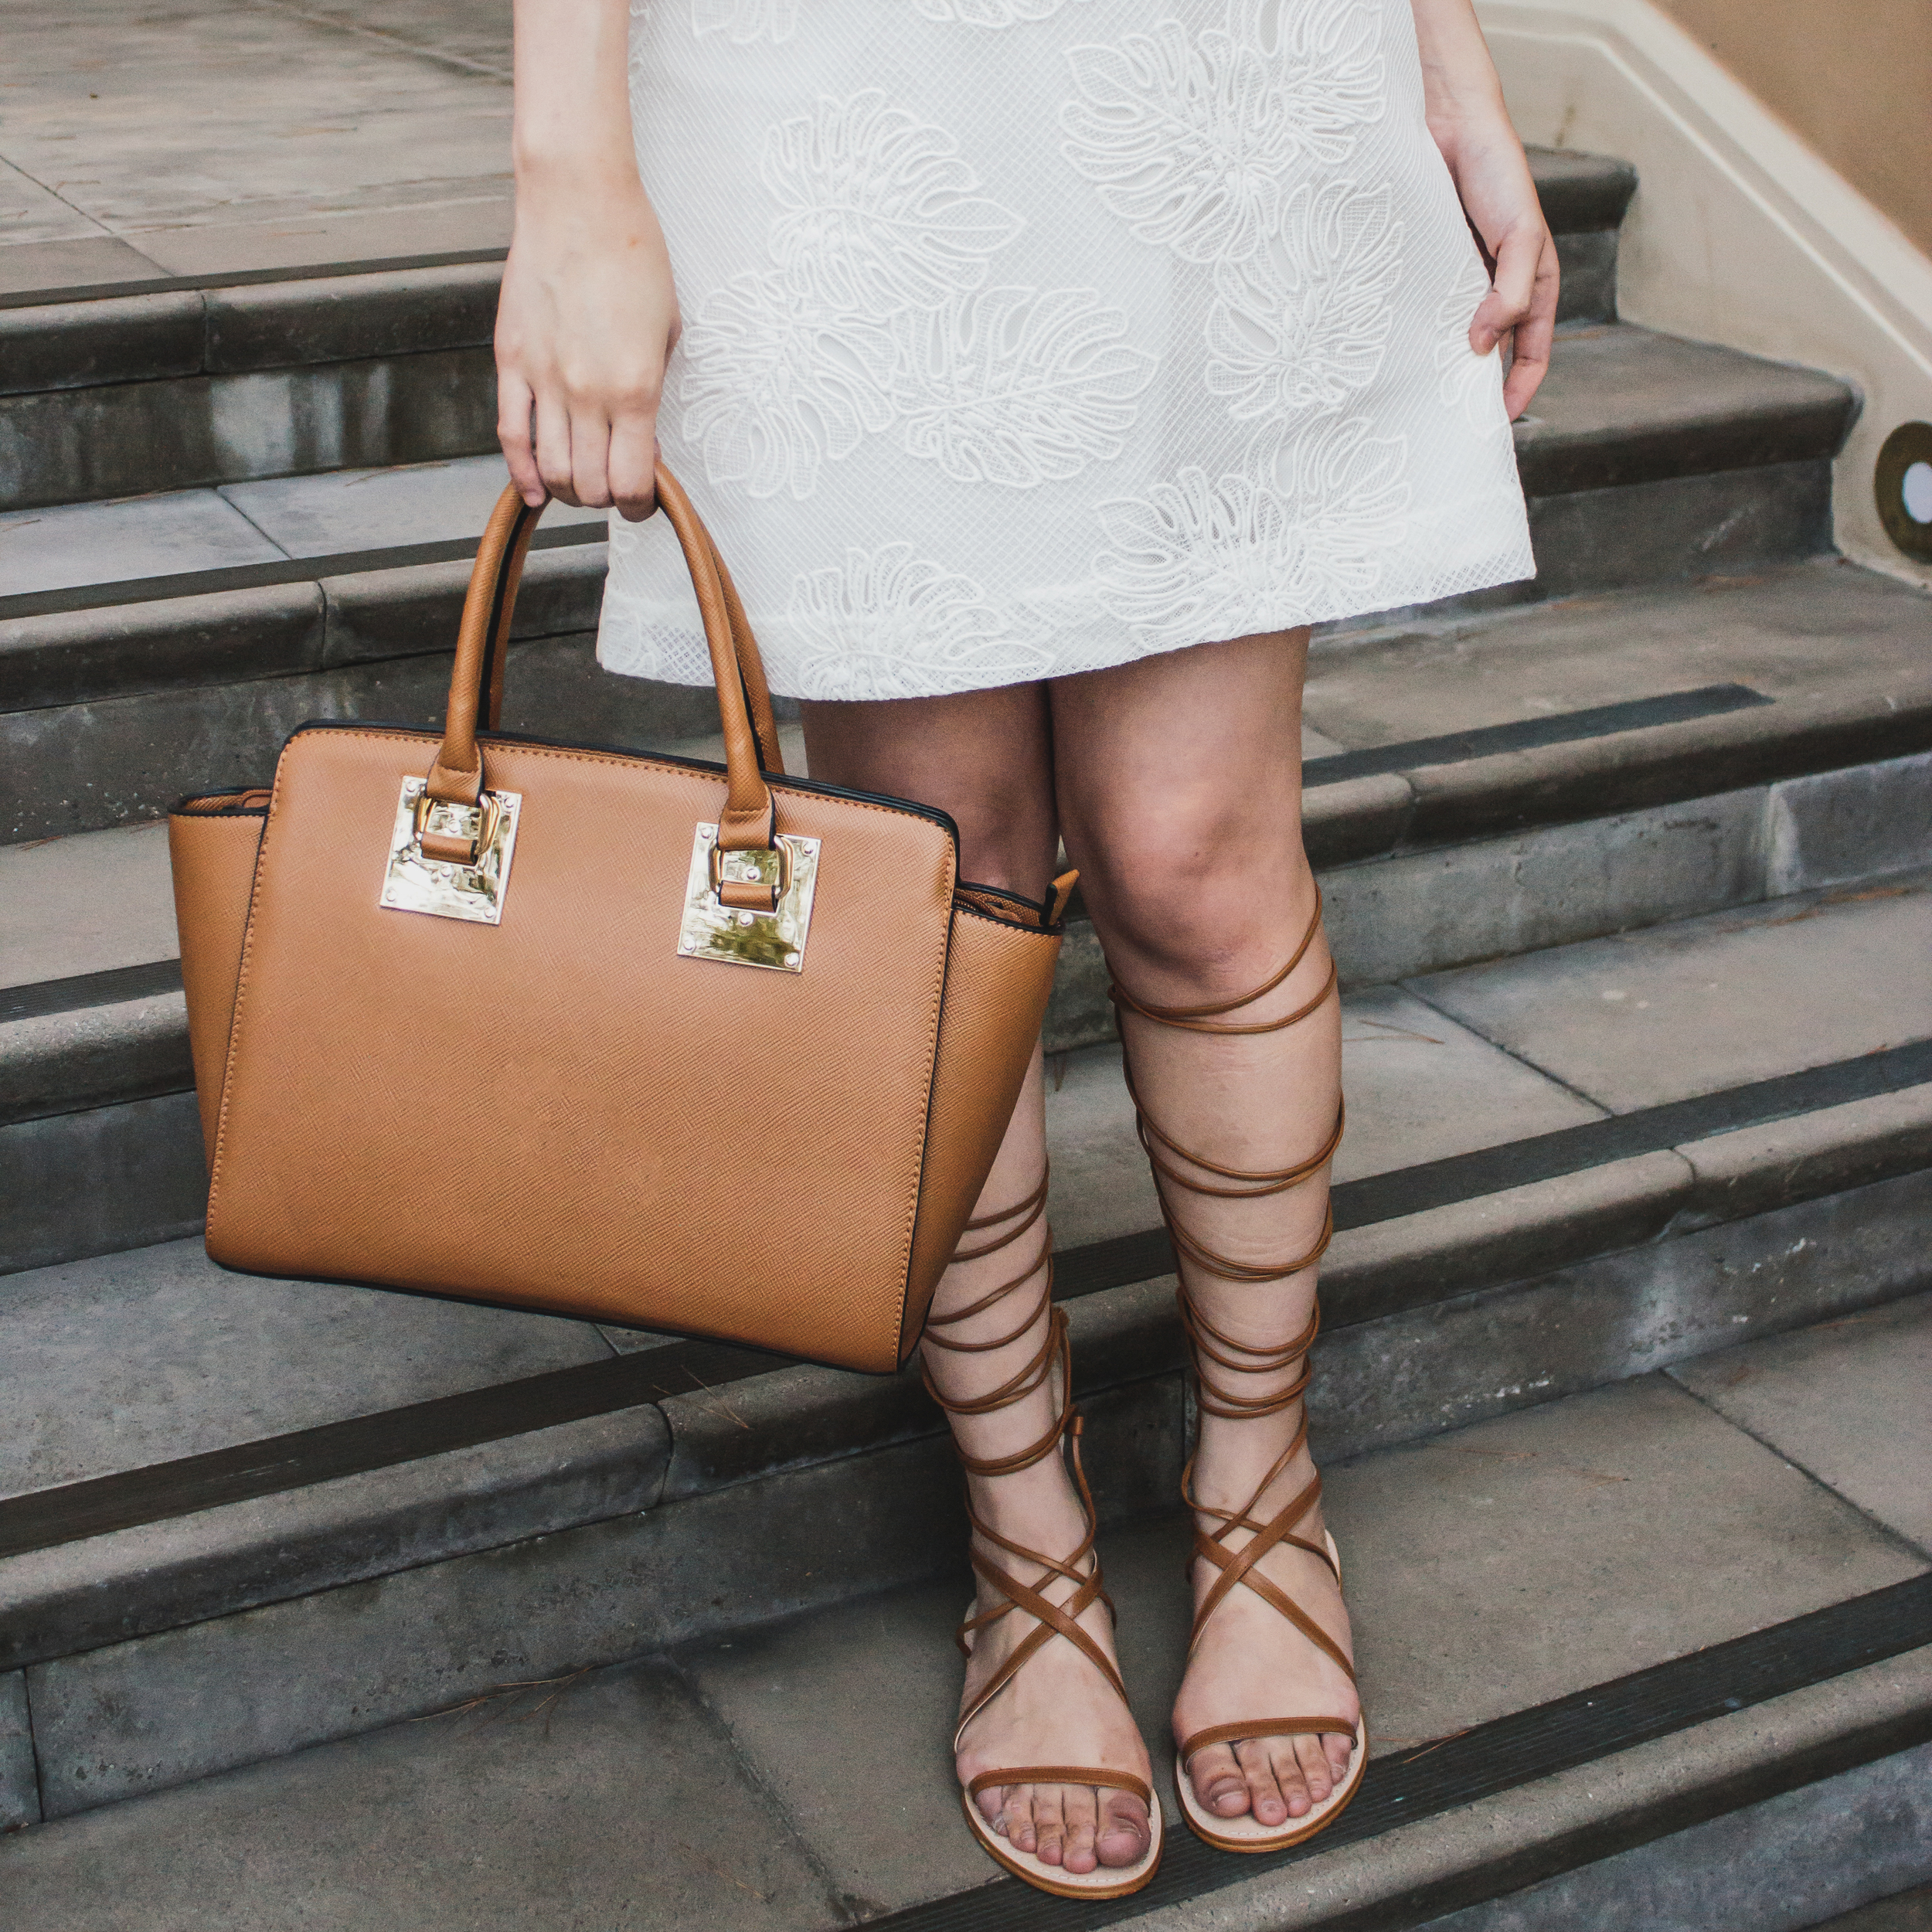 dress: loft | handbag: windsor | sunglasses: zerouv | sandals: zara